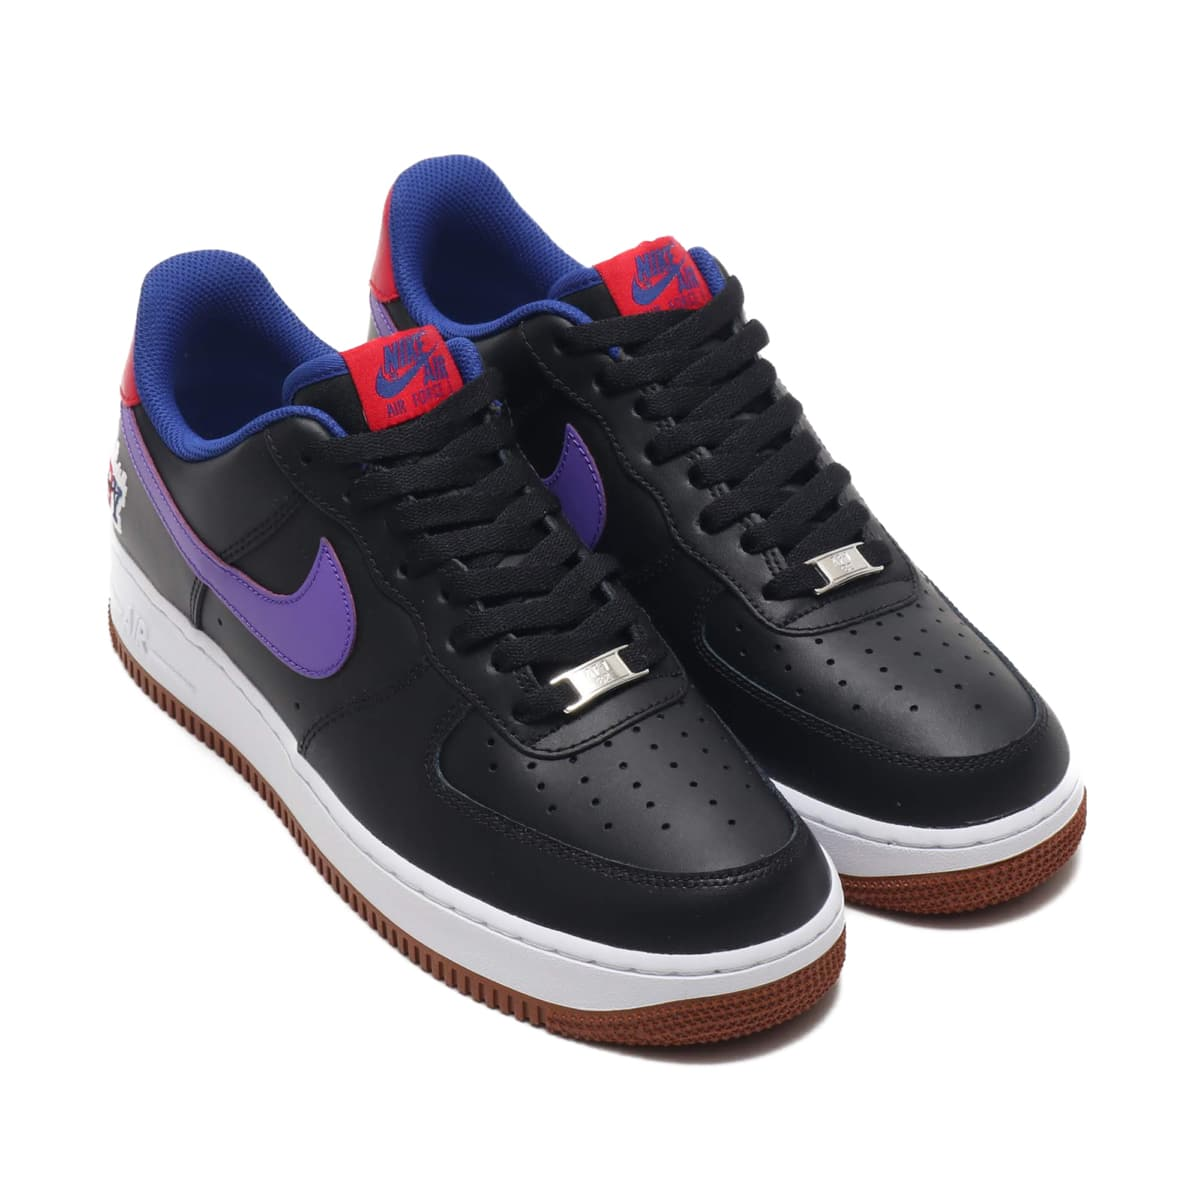 NIKE AIR FORCE 1 '07 LE BLACK/PSYCHIC PURPLE-DEEP ROYAL BLUE 19HO-S_photo_large